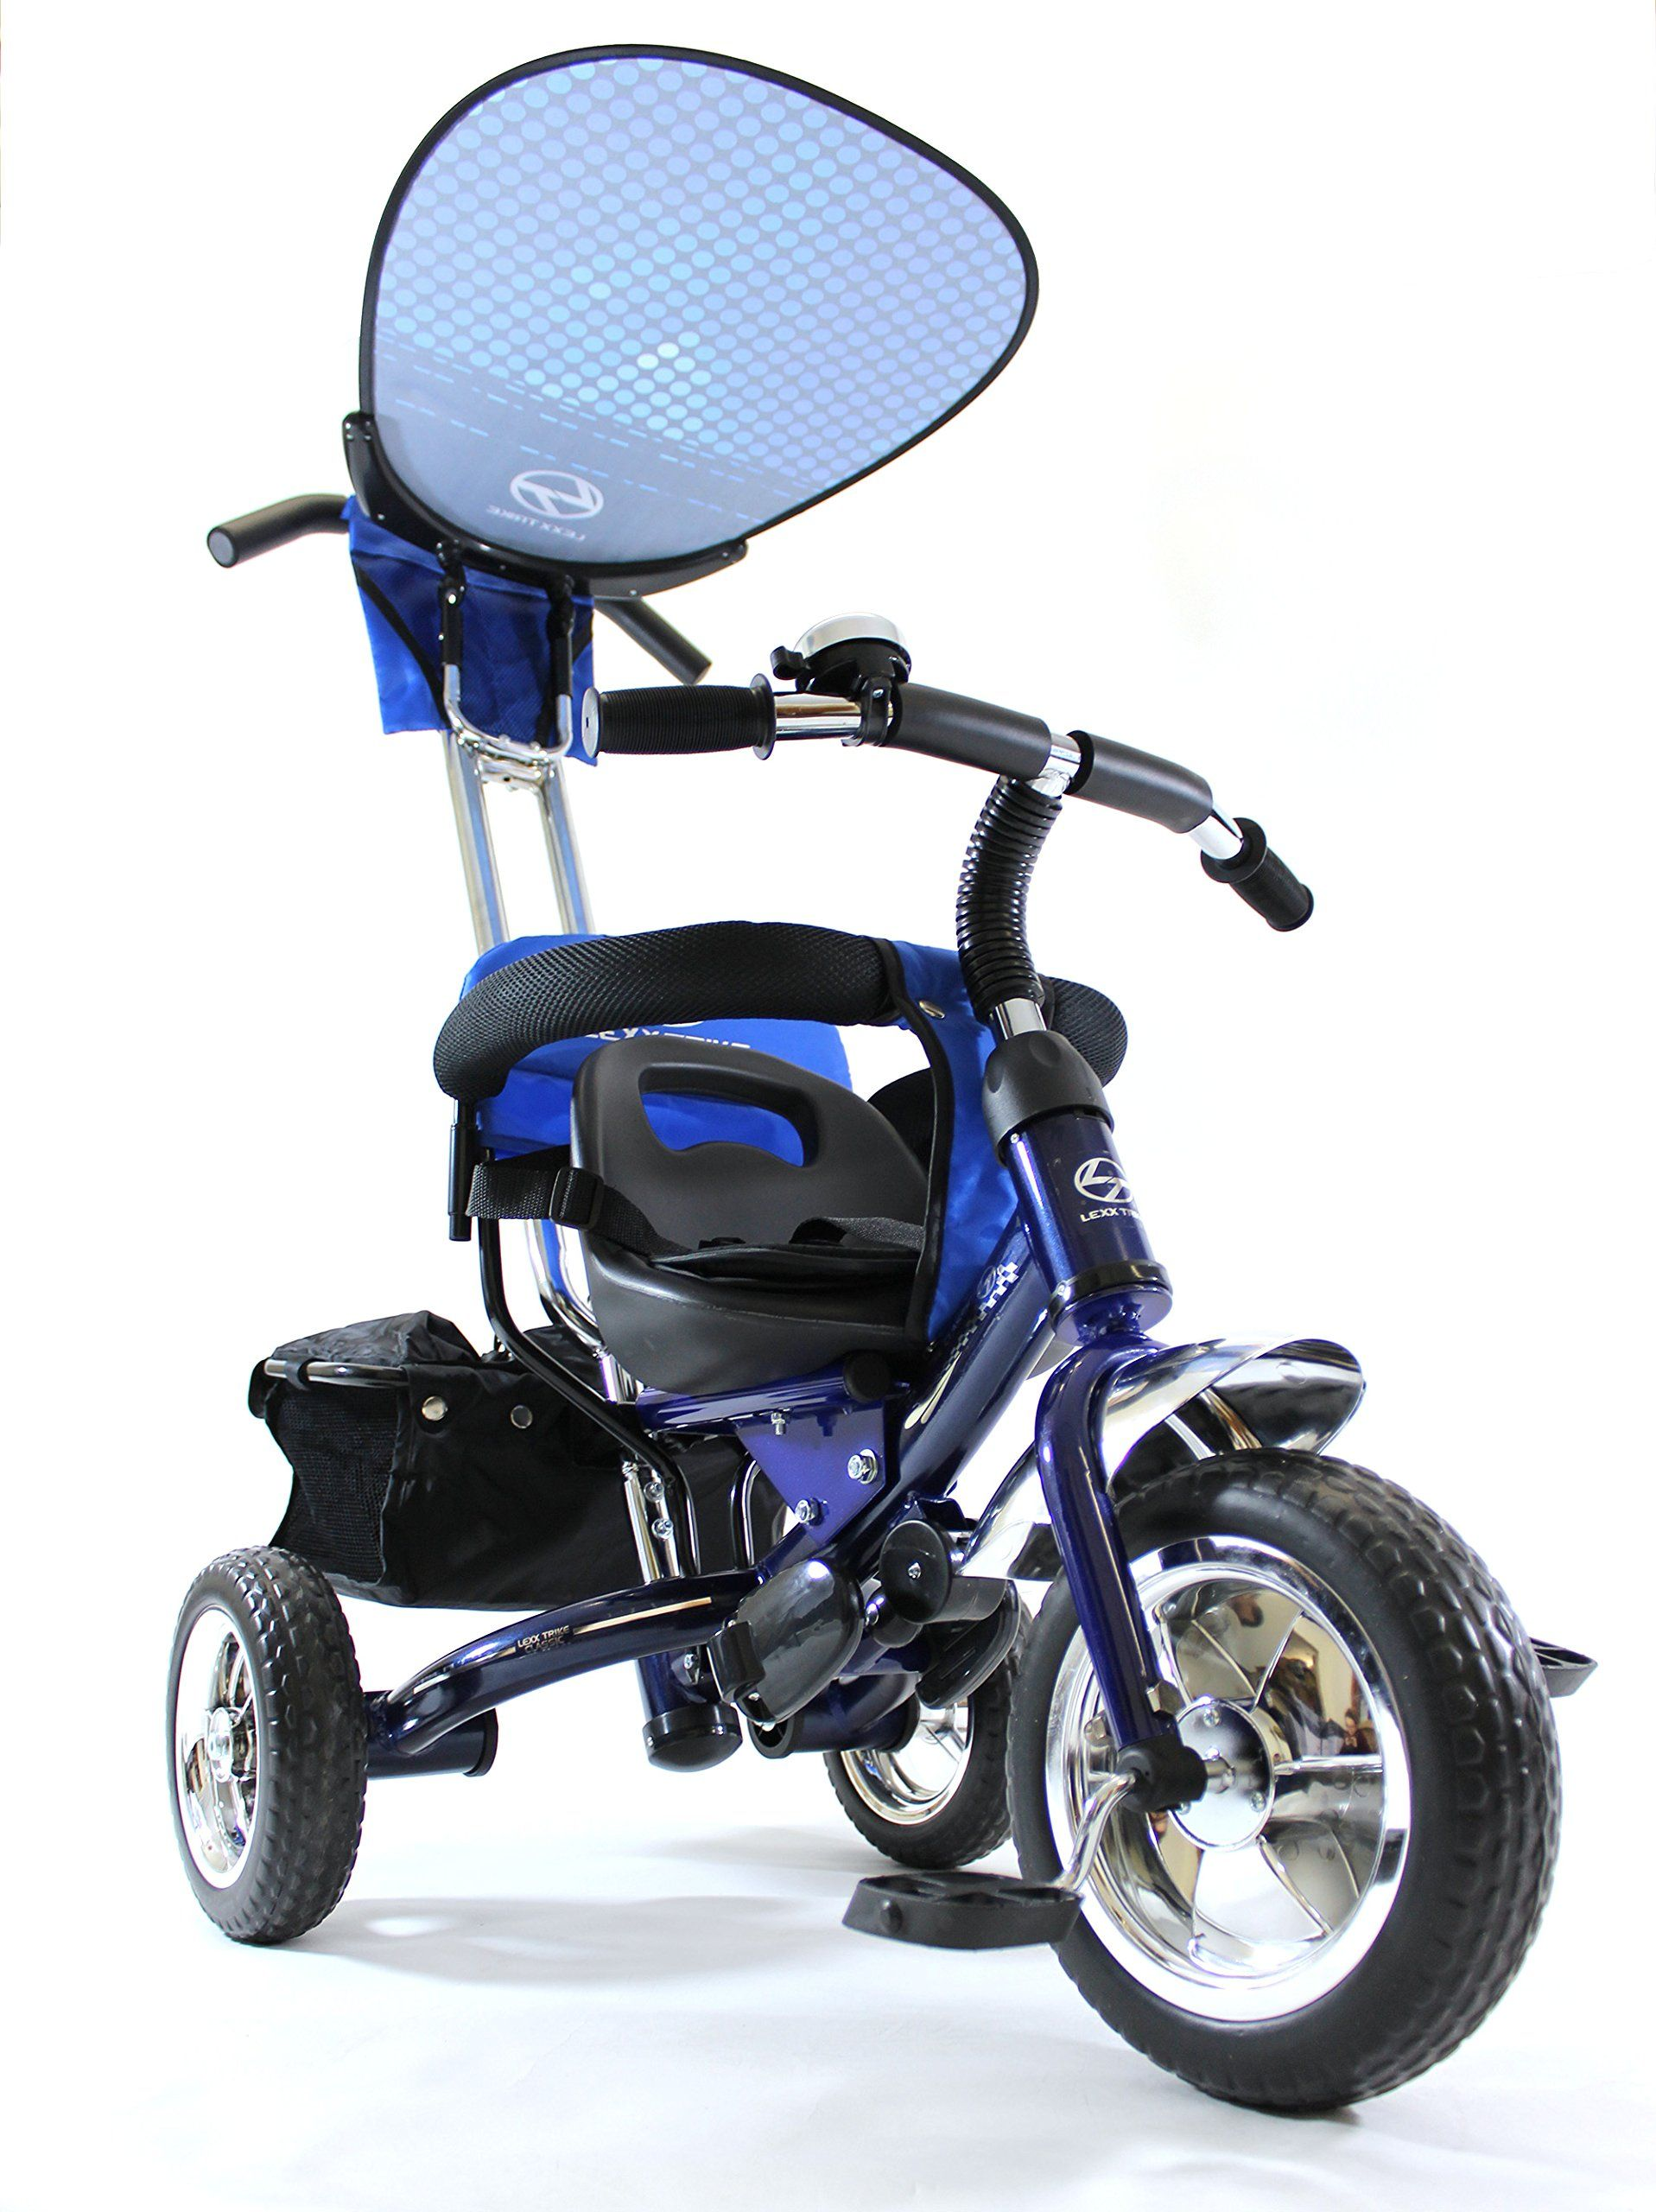 4in1 Lexx Trike Classic Smart Kidu0027s Tricycle 3 Wheel Bike Removable Handle u0026 Canopy ...  sc 1 st  Pinterest & 4in1 Lexx Trike Classic Smart Kidu0027s Tricycle 3 Wheel Bike ...